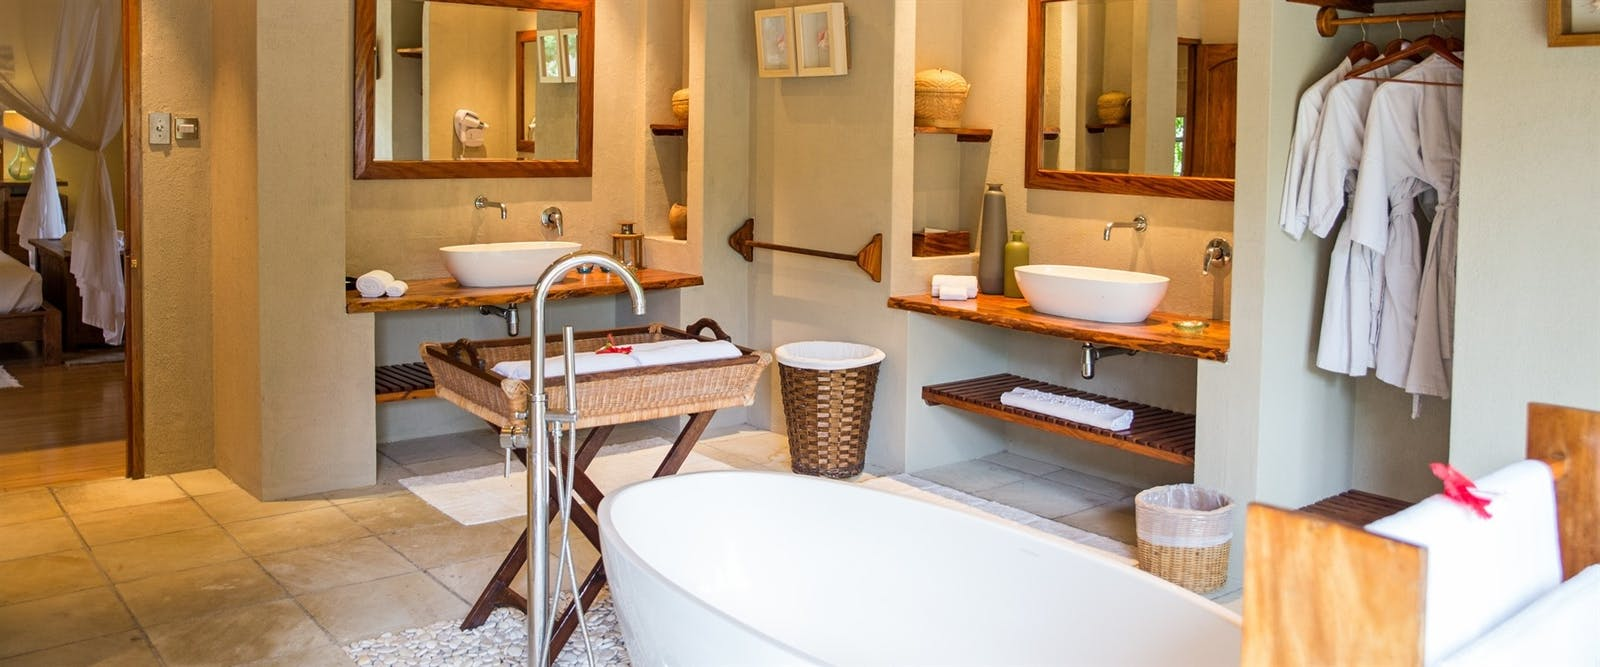 Beach Villa Bathroom at Denis Private Island, Seychelles